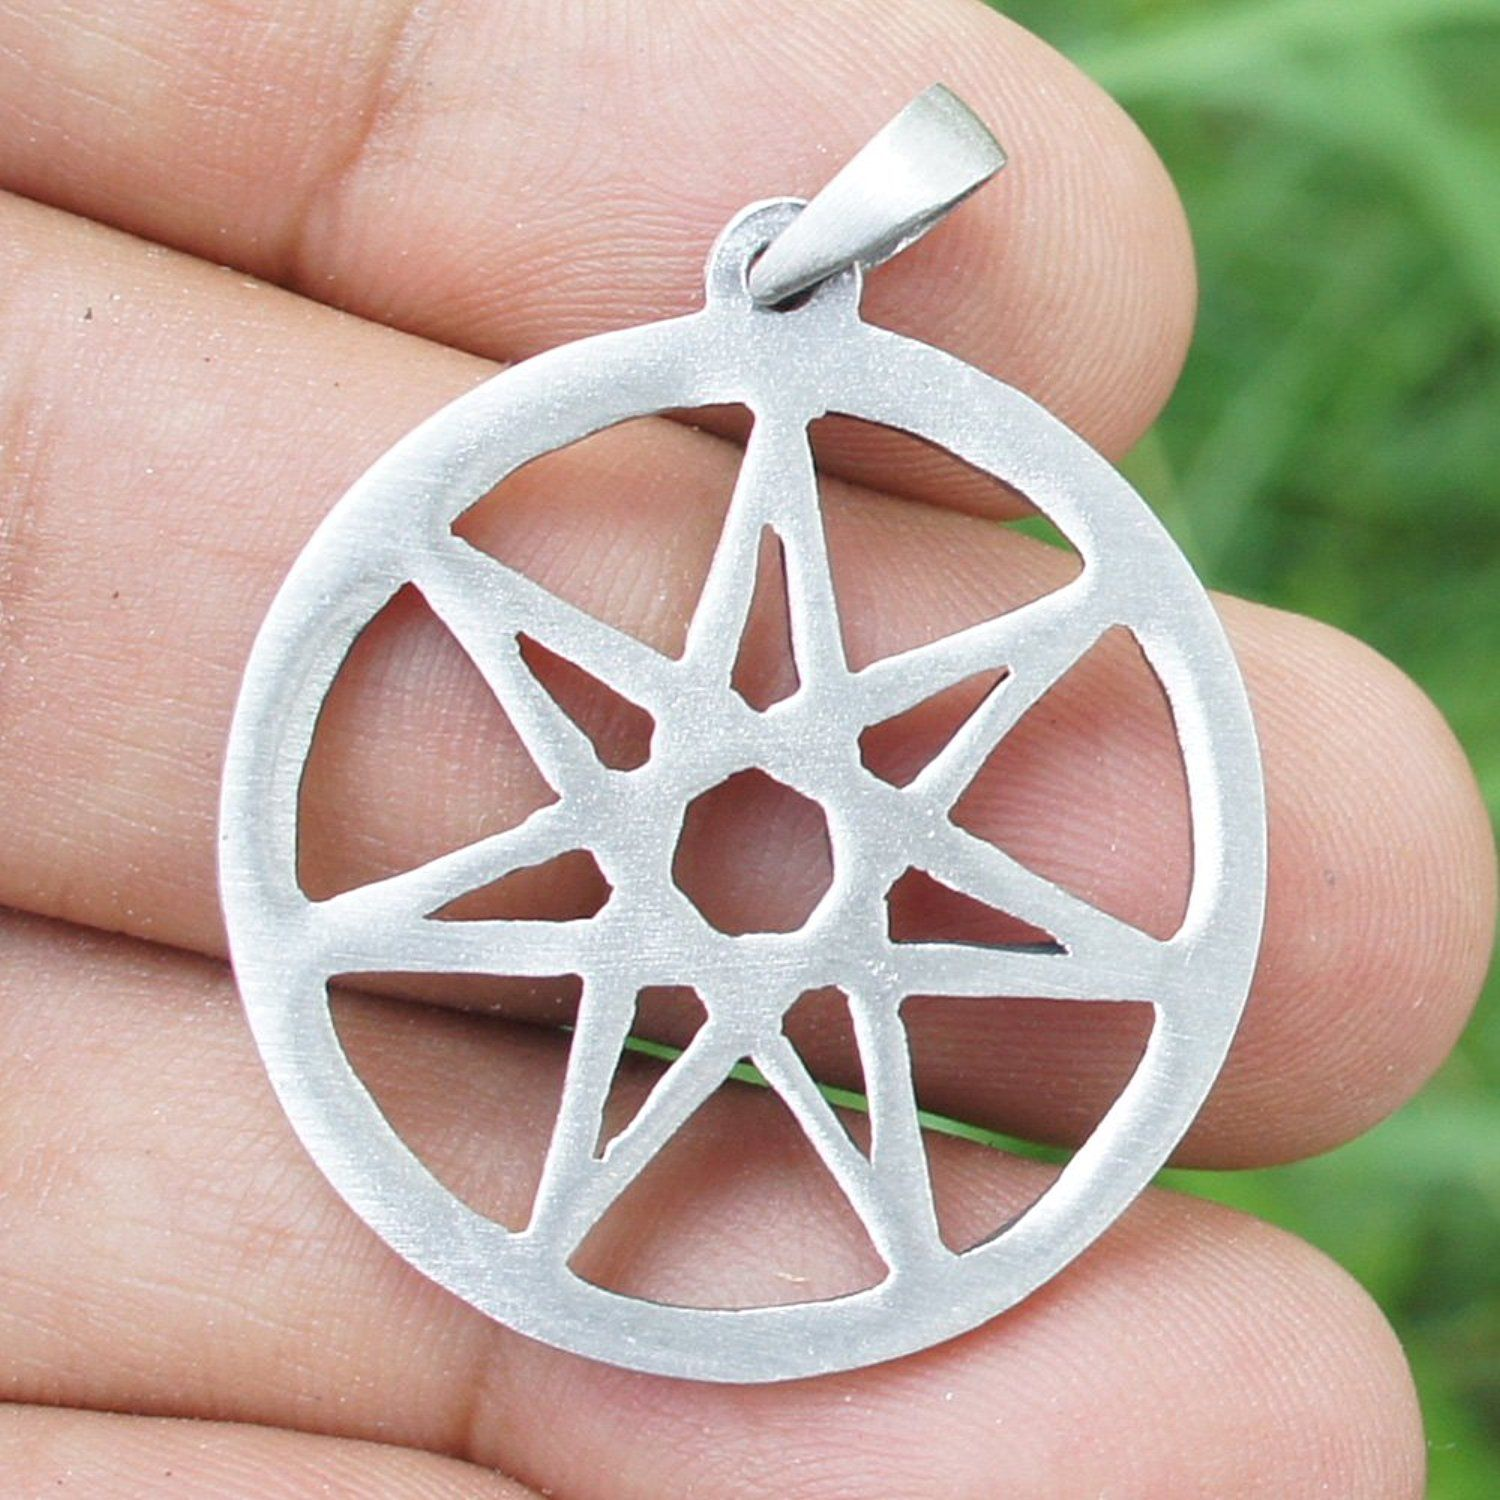 Septagram 7 pointed fairy star heptagram pewter pendant charm amulet septagram 7 pointed fairy star heptagram pewter pendant charm amulet you can find aloadofball